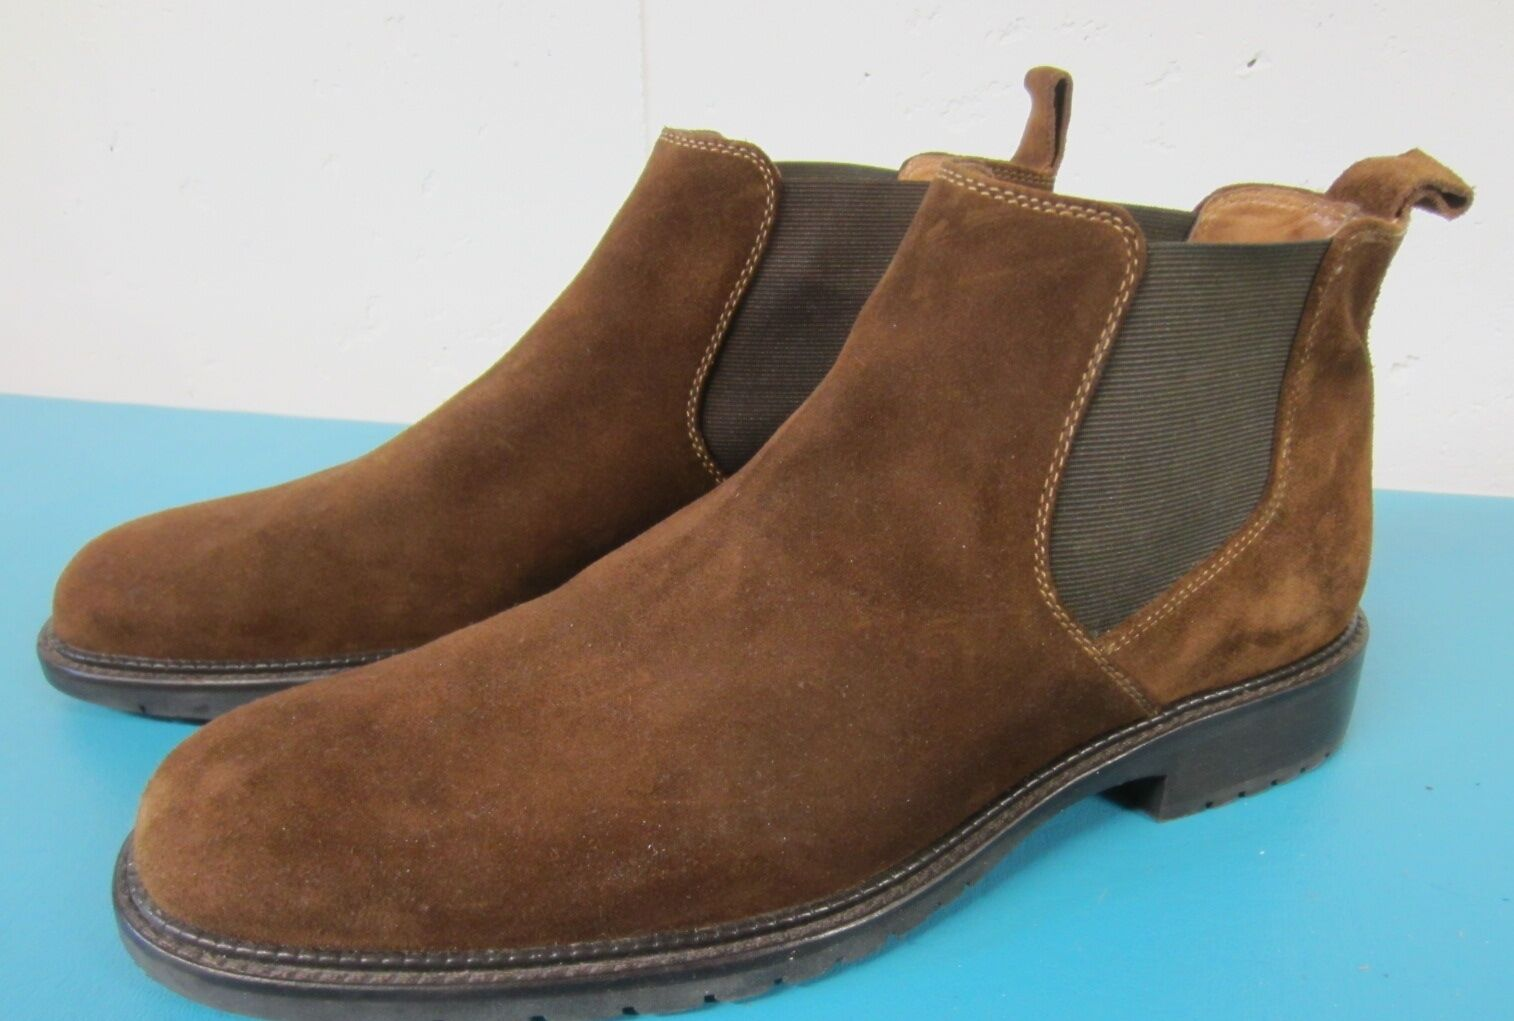 JOHNSTON & MURPHY Cinnamon Brown SUEDE Elastic Gusset Jodhpur Ankle Boots Sz 9